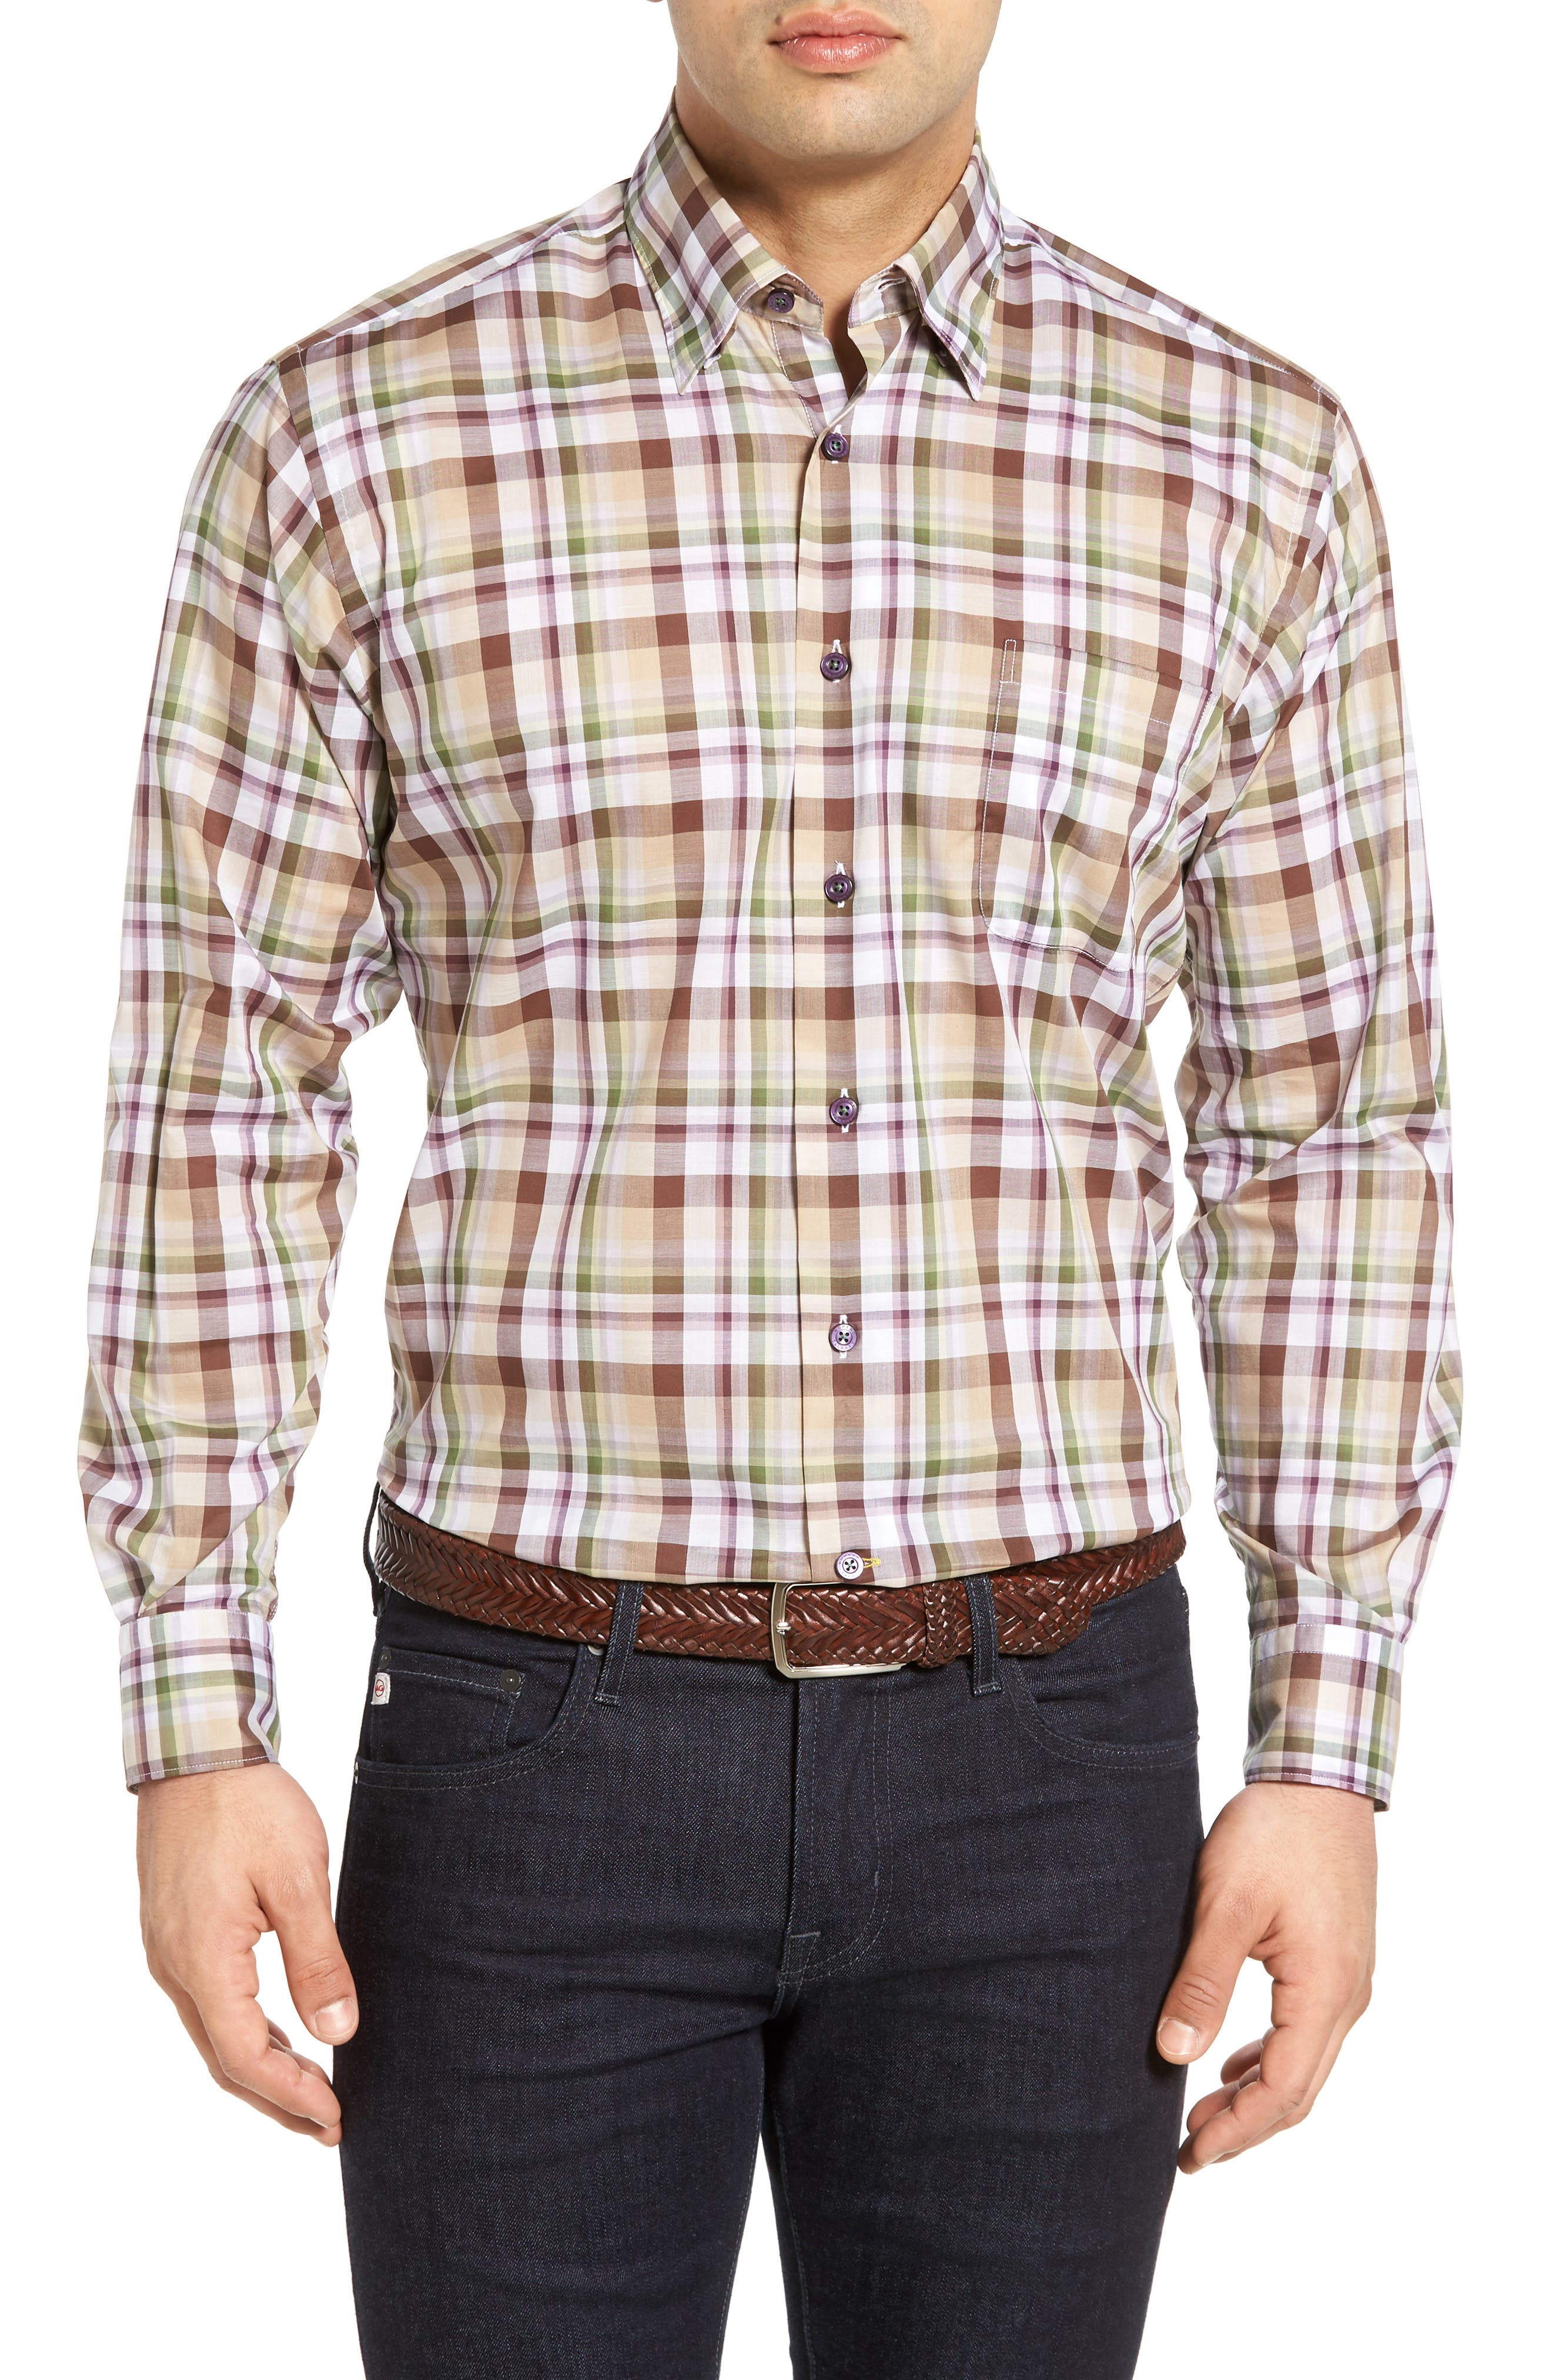 Anderson Classic Fit Sport Shirt,                         Main,                         color, Brown/ Iris